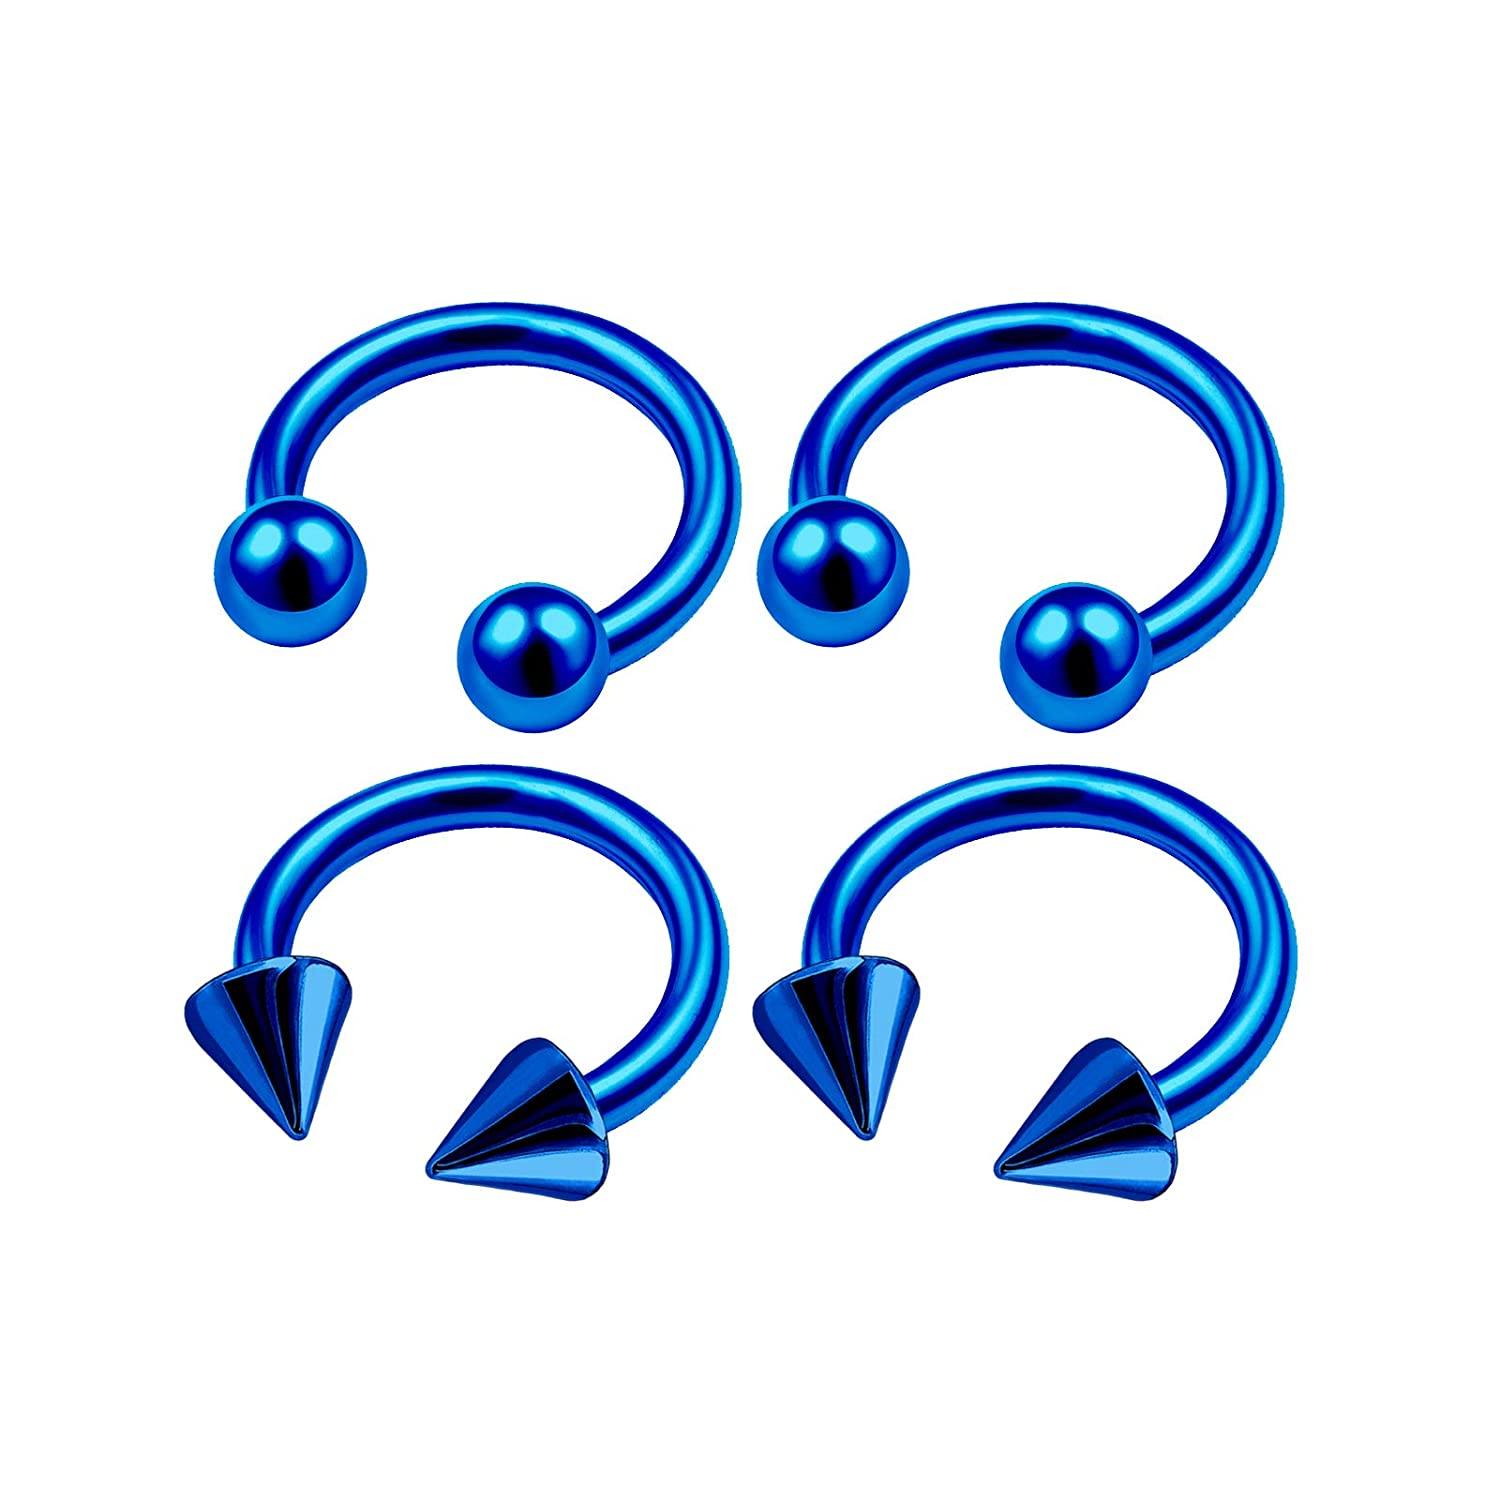 MATIGA 4Pcs Anodized 20g-14g Cartilage Horseshoe Hoop Piercing Jewelry Tragus Eyebrow Nose Septum Cartilage Ball Cone More Choices